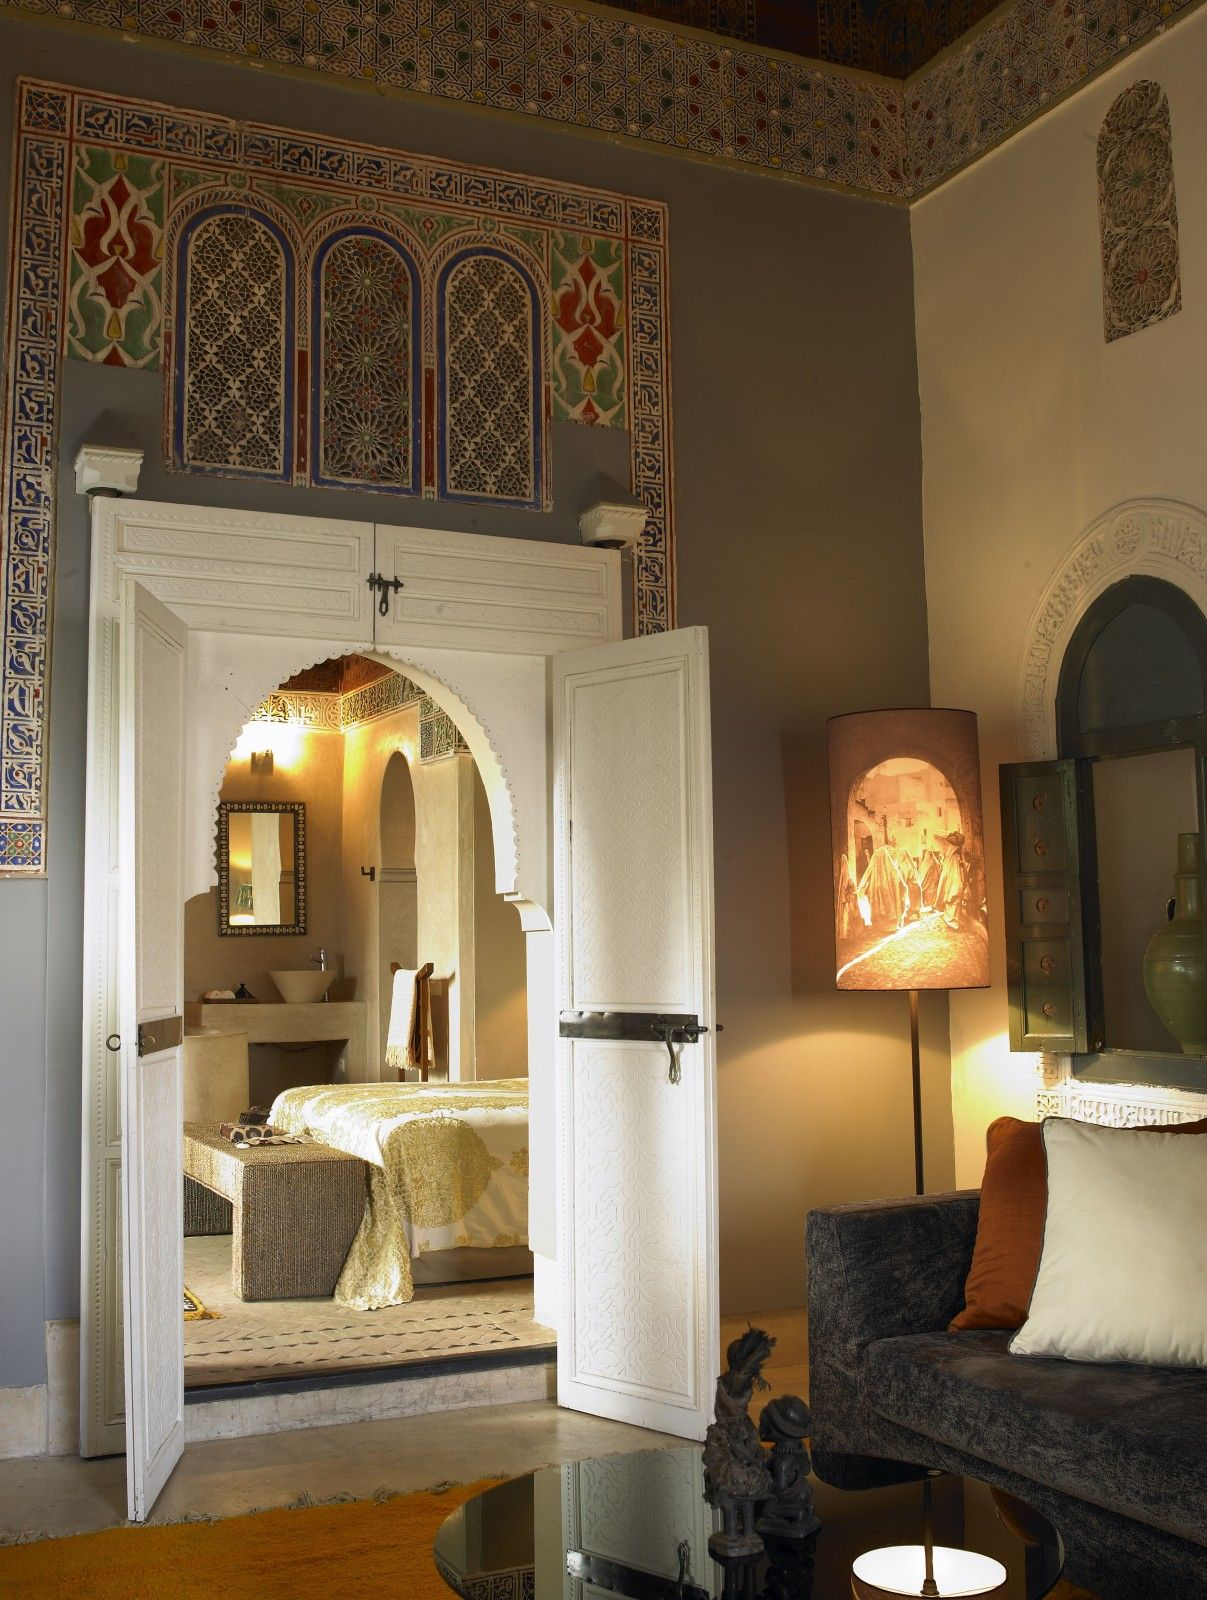 Marrakech Luxury Hotel Ryad Dyor Riad Boutique Hotel In Marrakech